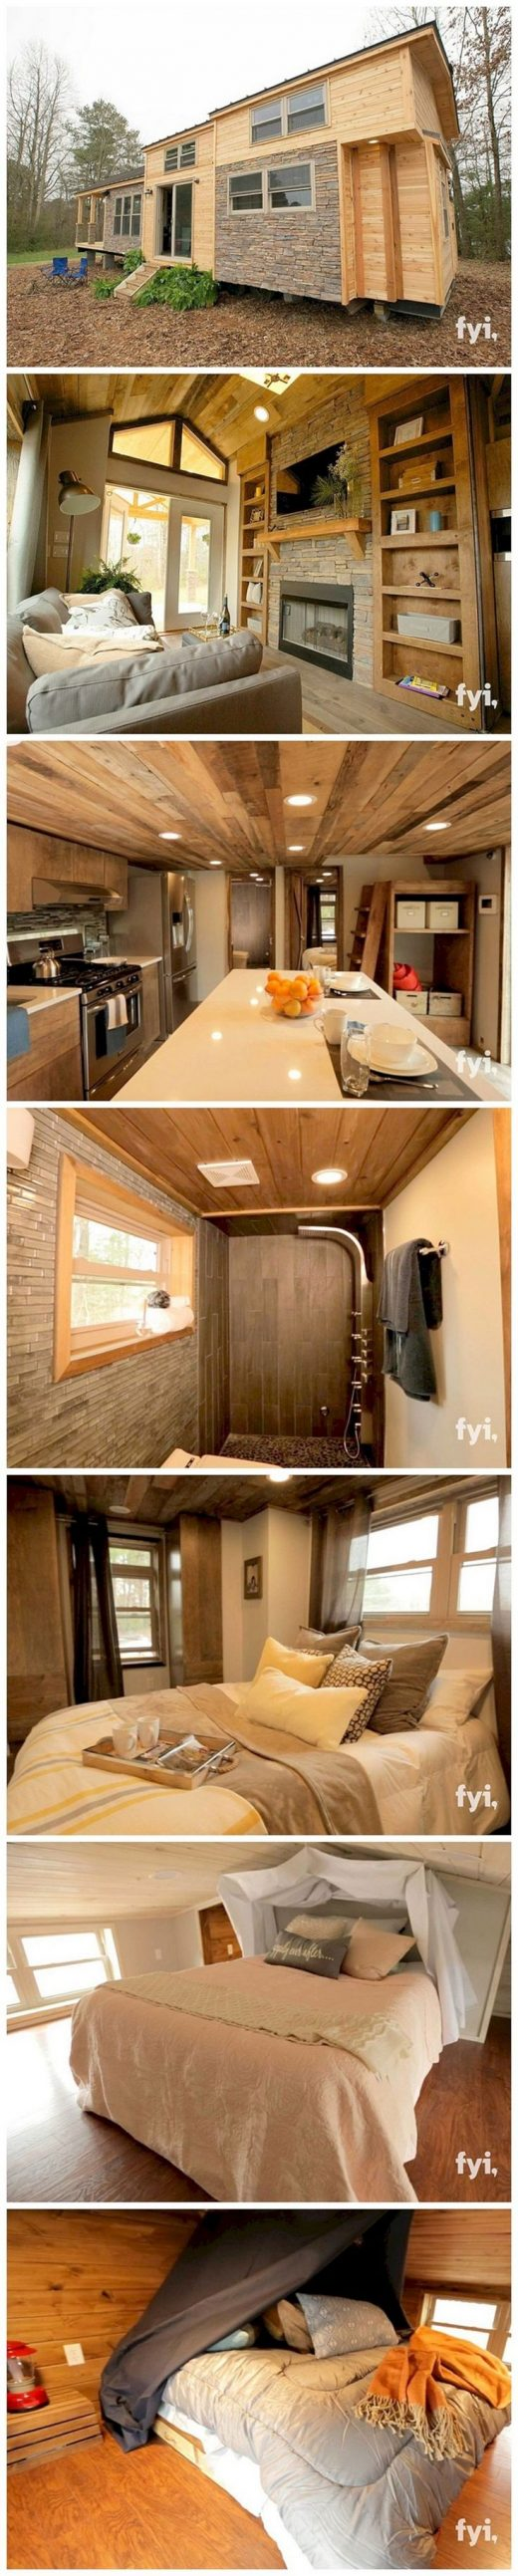 42 Best And Most Amazing Luxurious Tiny Houses Design Ever Been